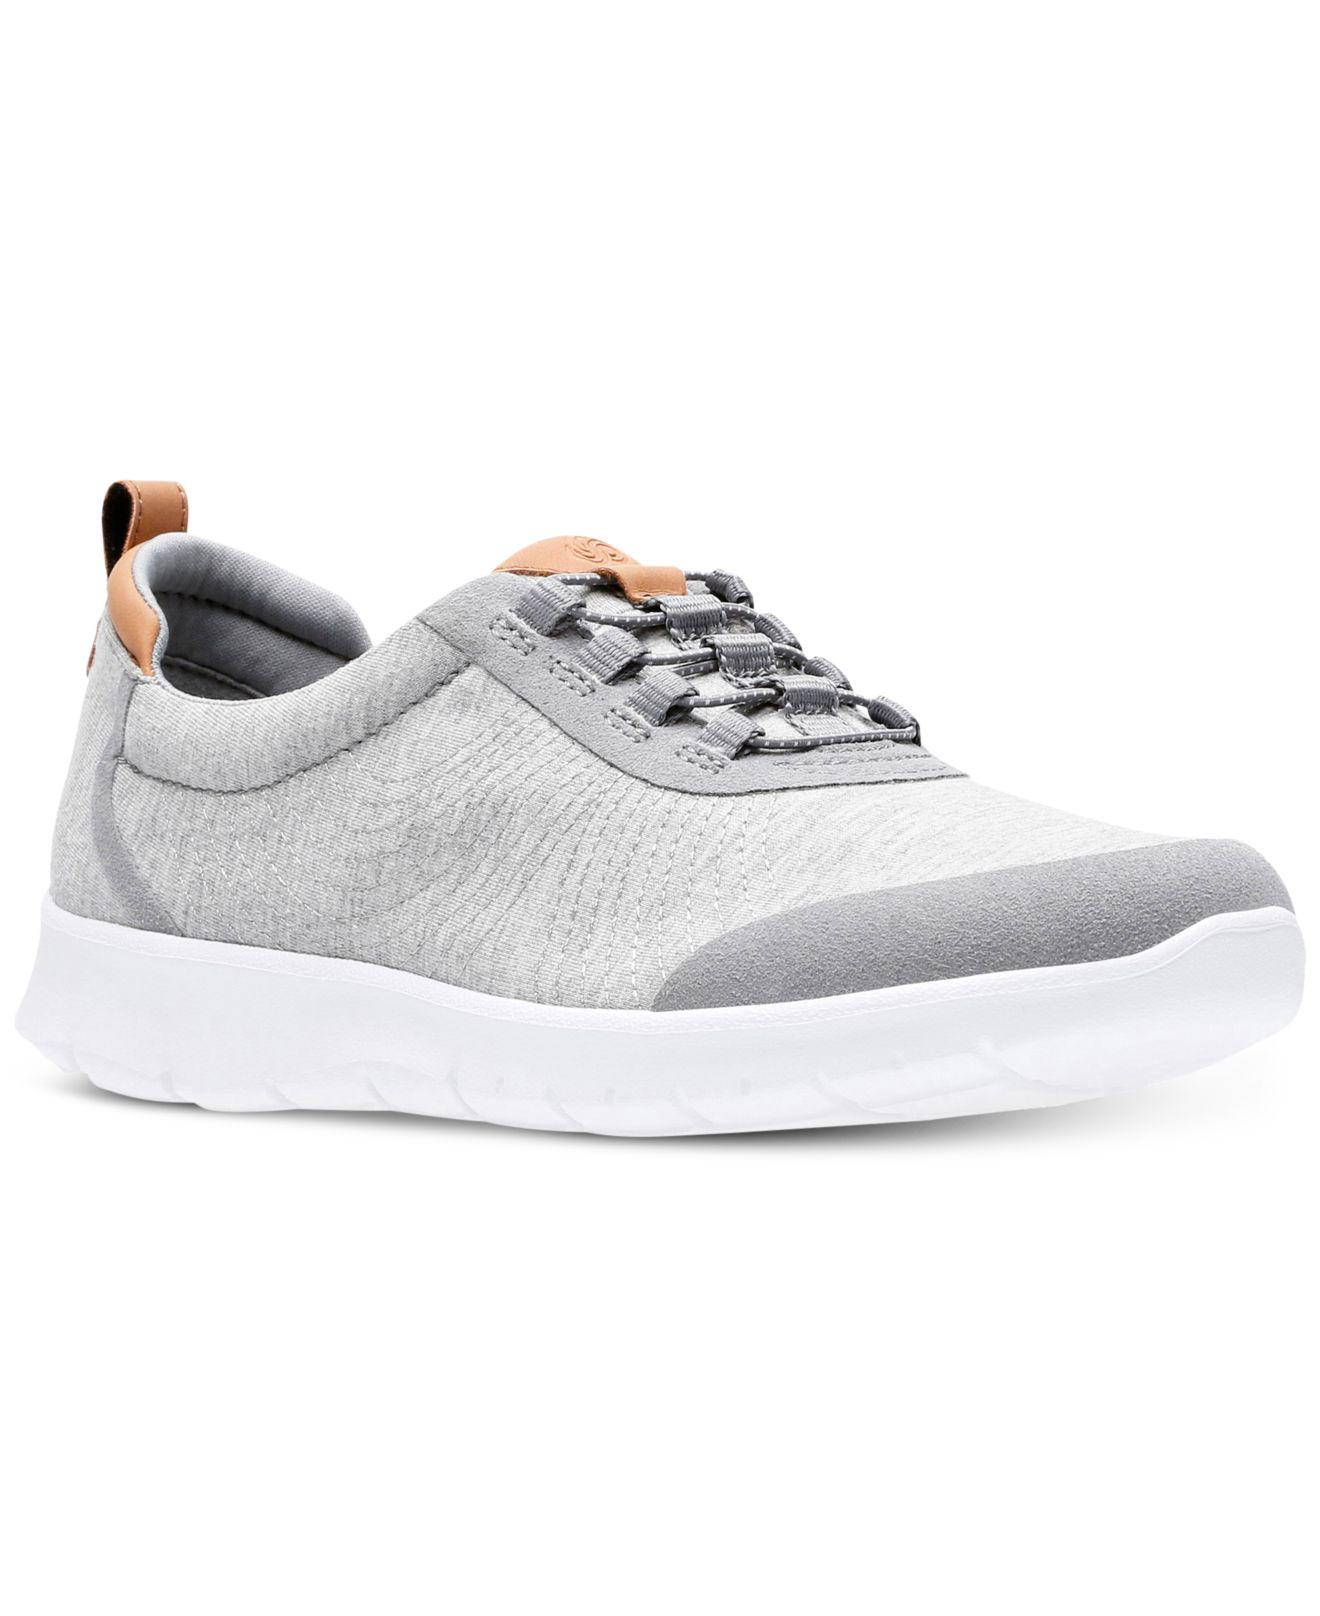 Clarks Step Allena Sneaker - Wide Width Available